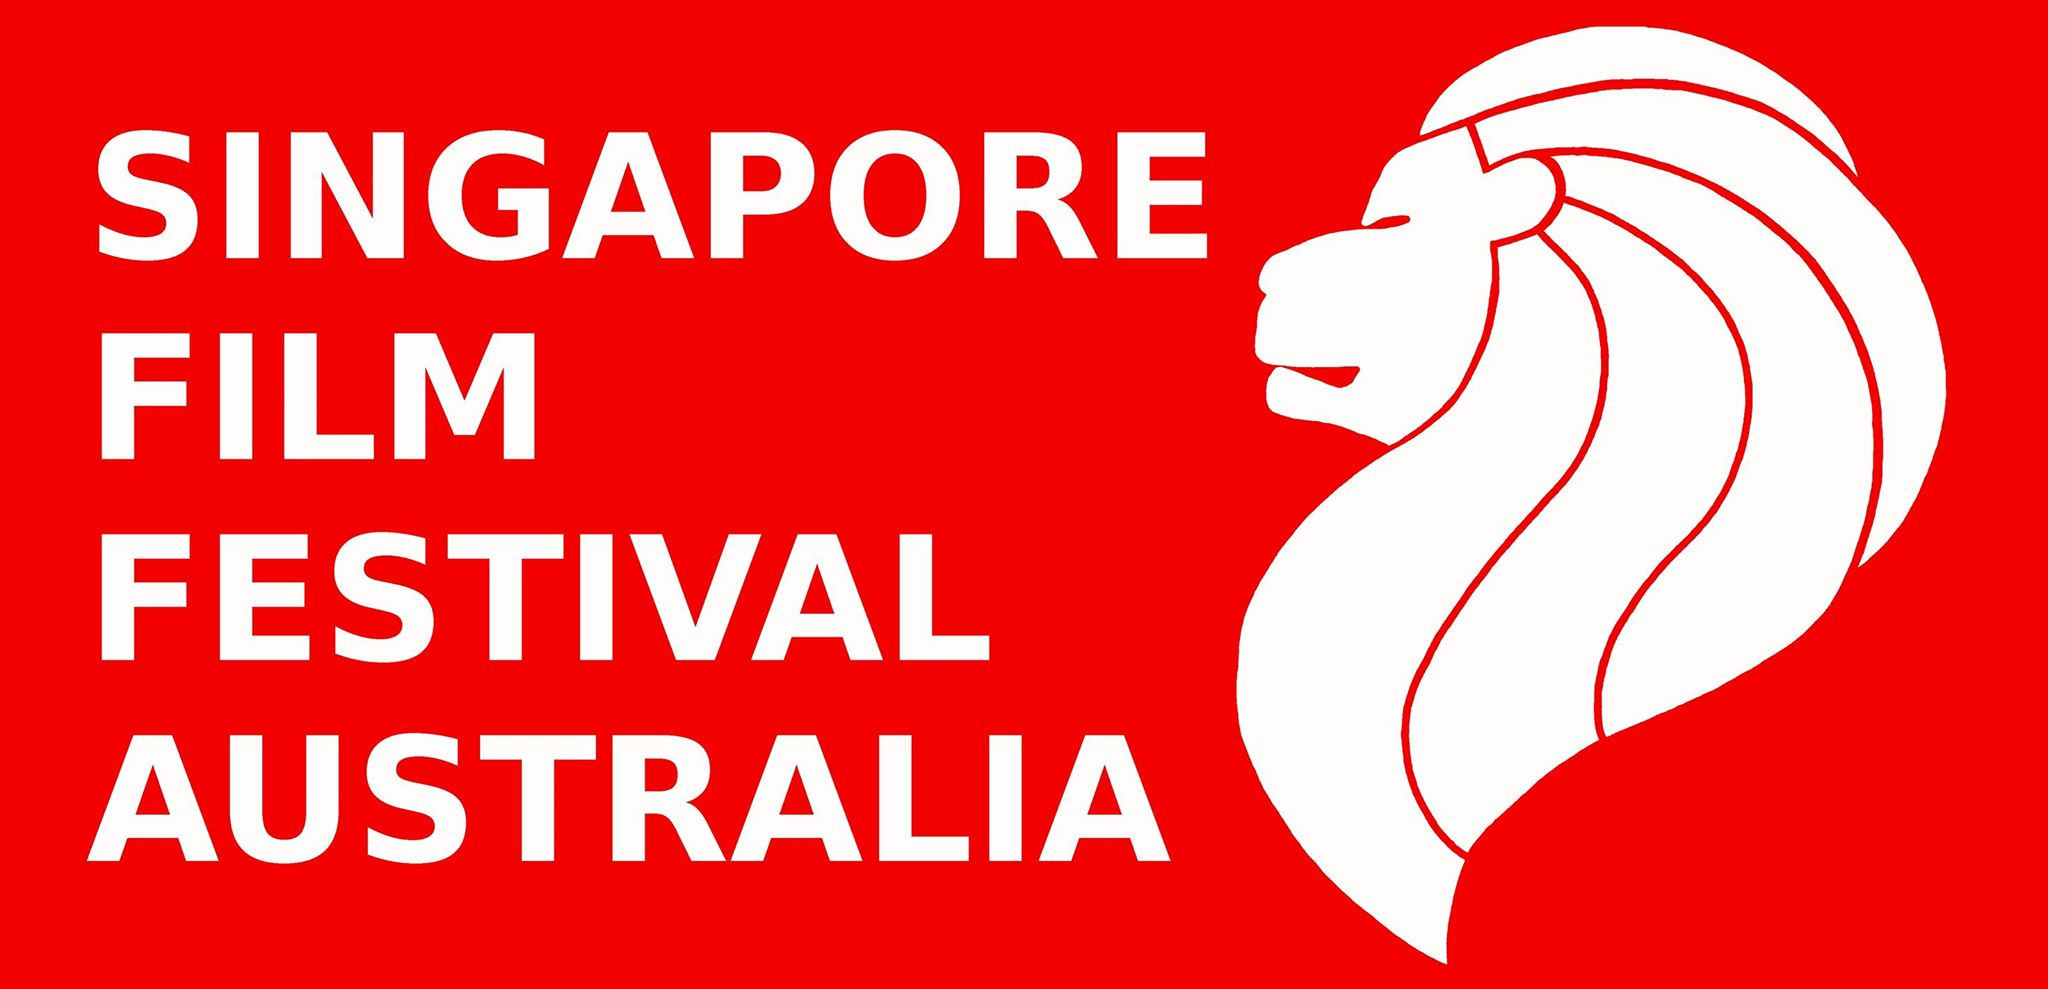 Singapore Film Festival Australia to Visit Perth, Sydney and Canberra in October and November